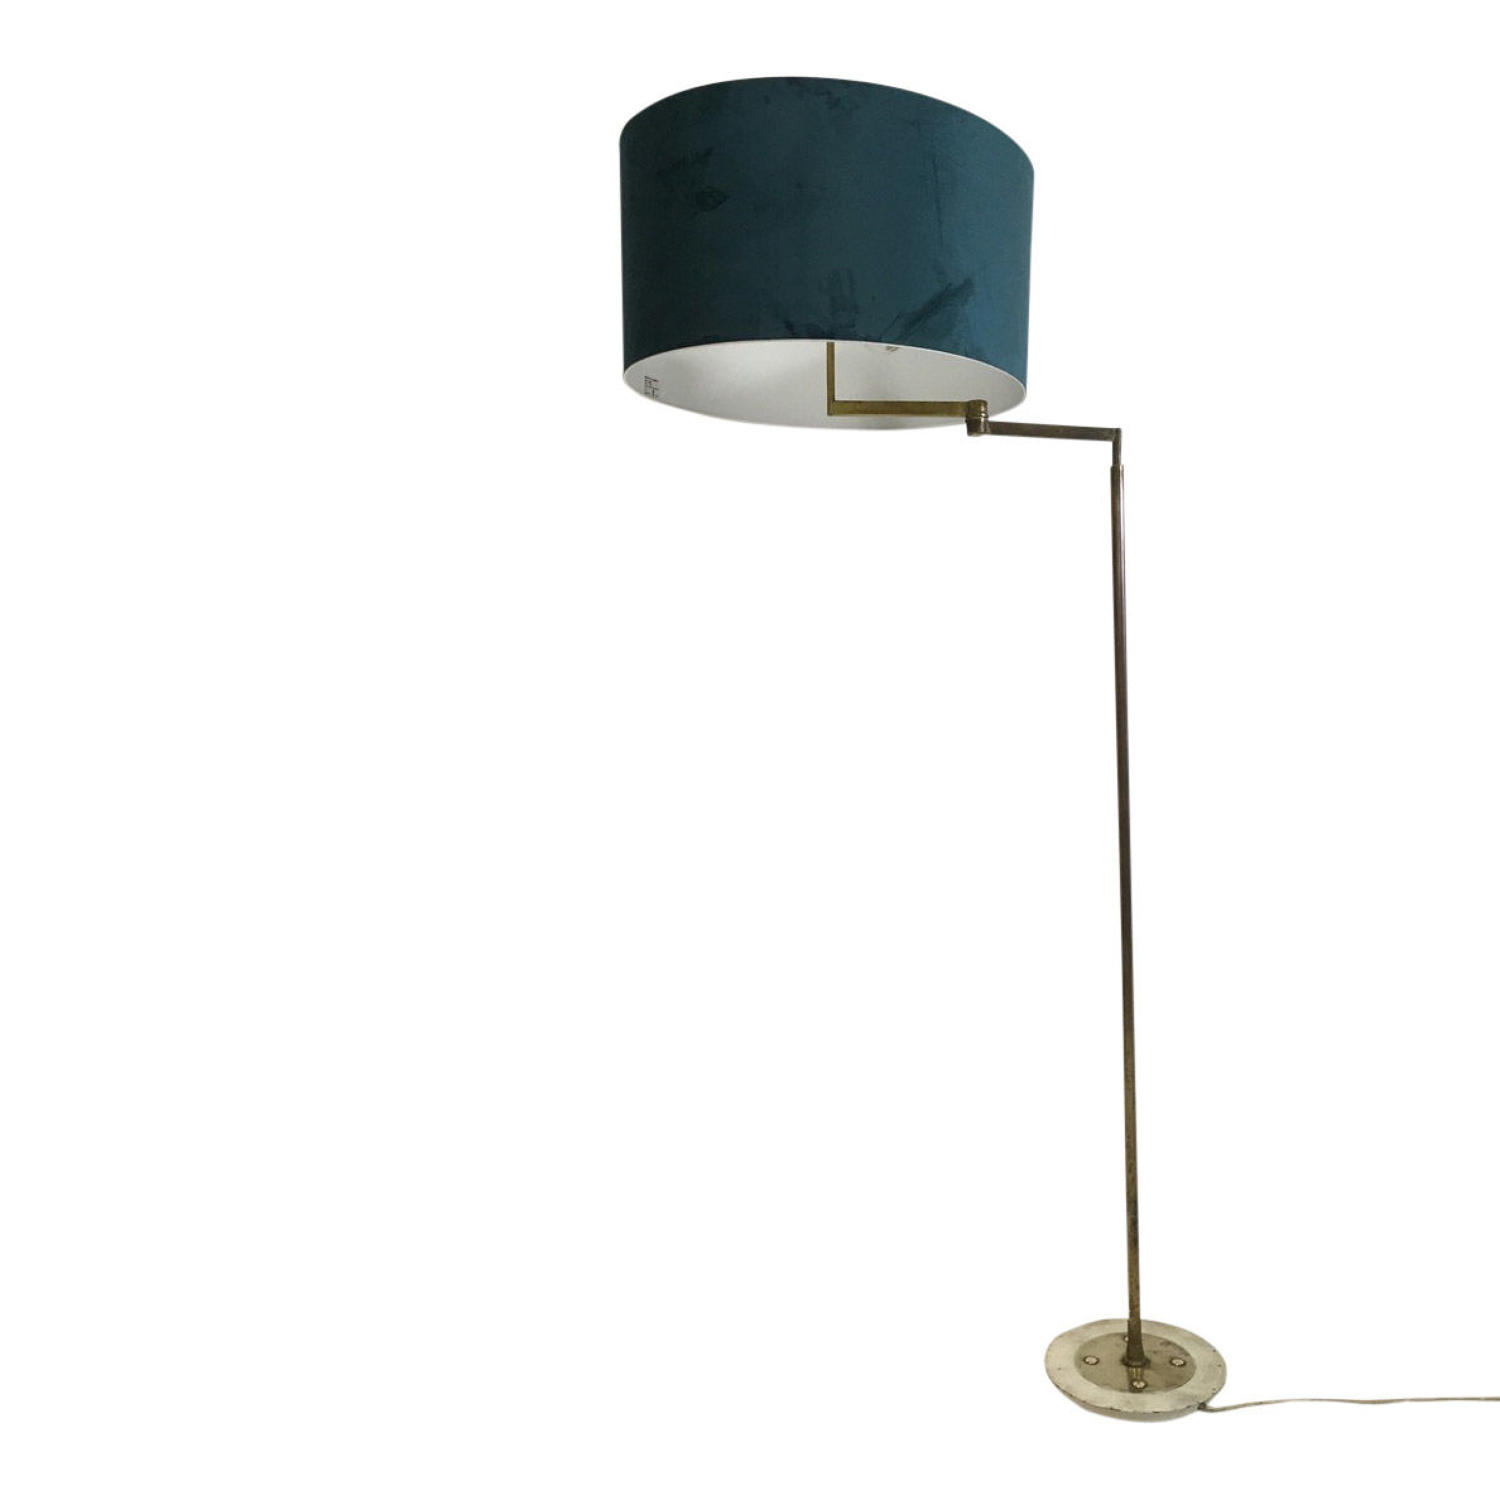 1950s brass swing arm floor lamp